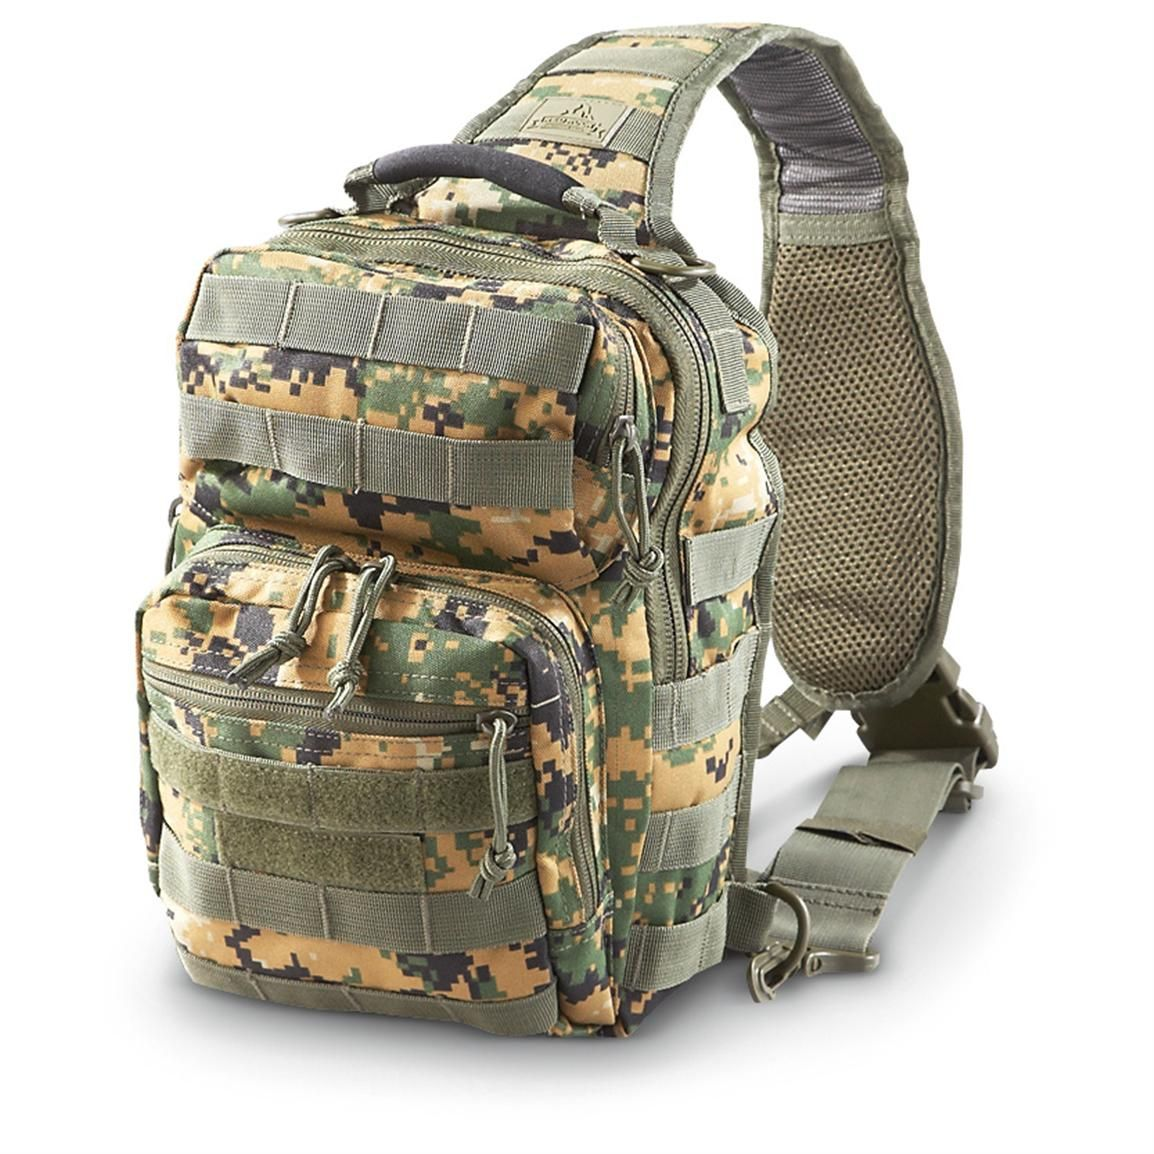 Red Rock Outdoor Gear Rover Sling Bag 182449 Hunting Backpacks At Sportsman S Guide